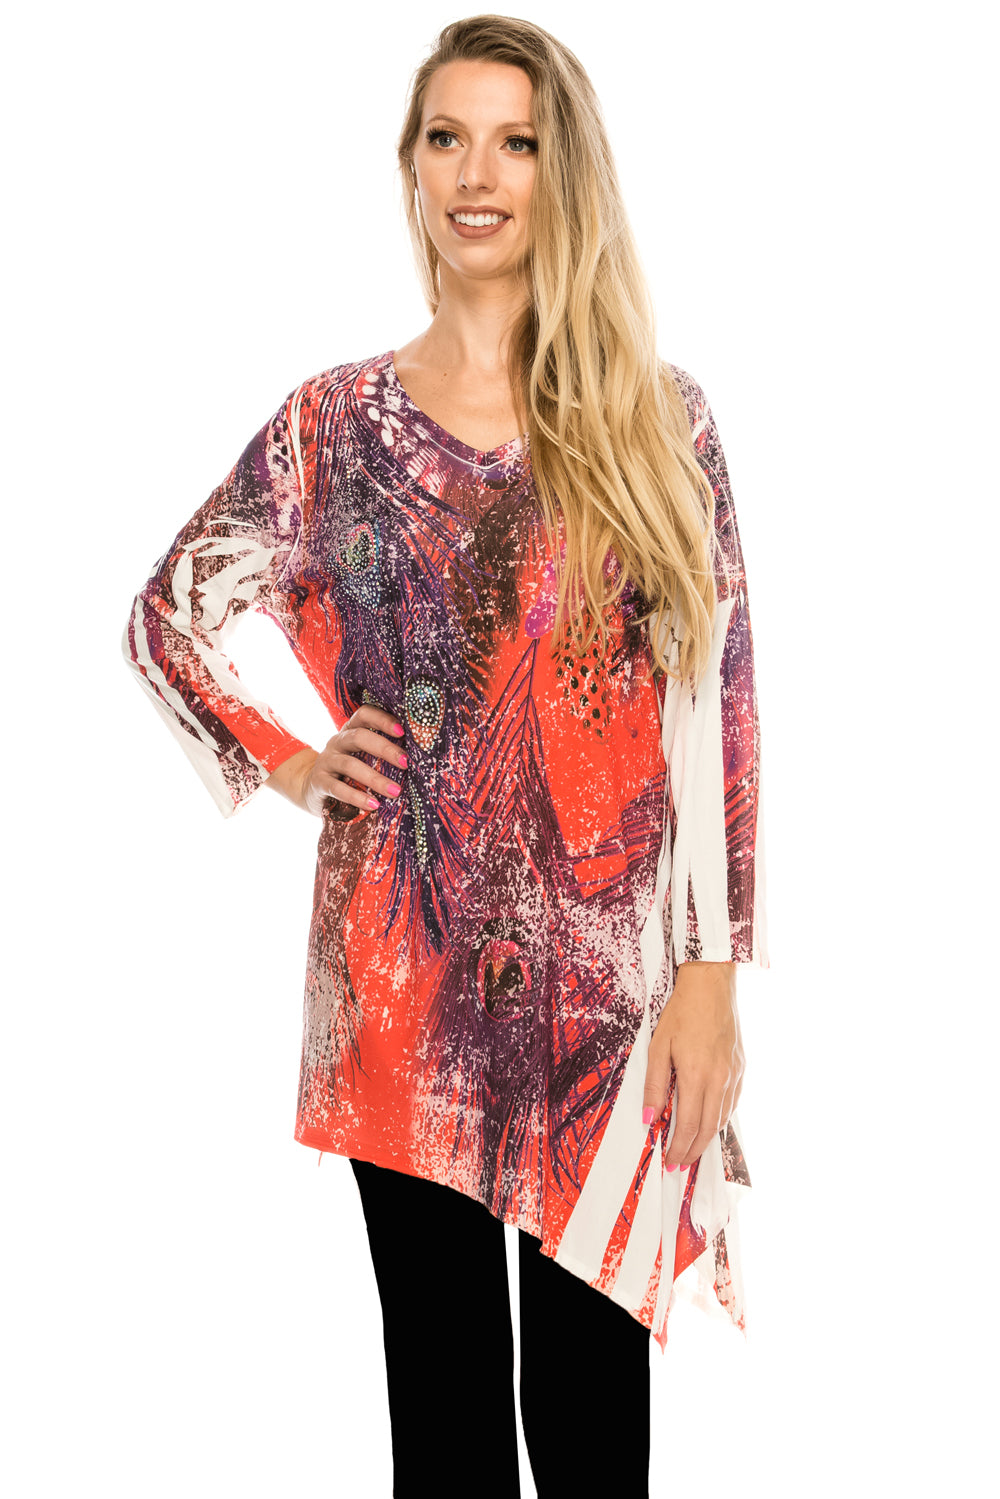 Jostar Women's HIT V-Neck Binding Top 3/4 Sleeve Sublimation Rhinestones, 313HT-QU-R-U171 - Jostar Online